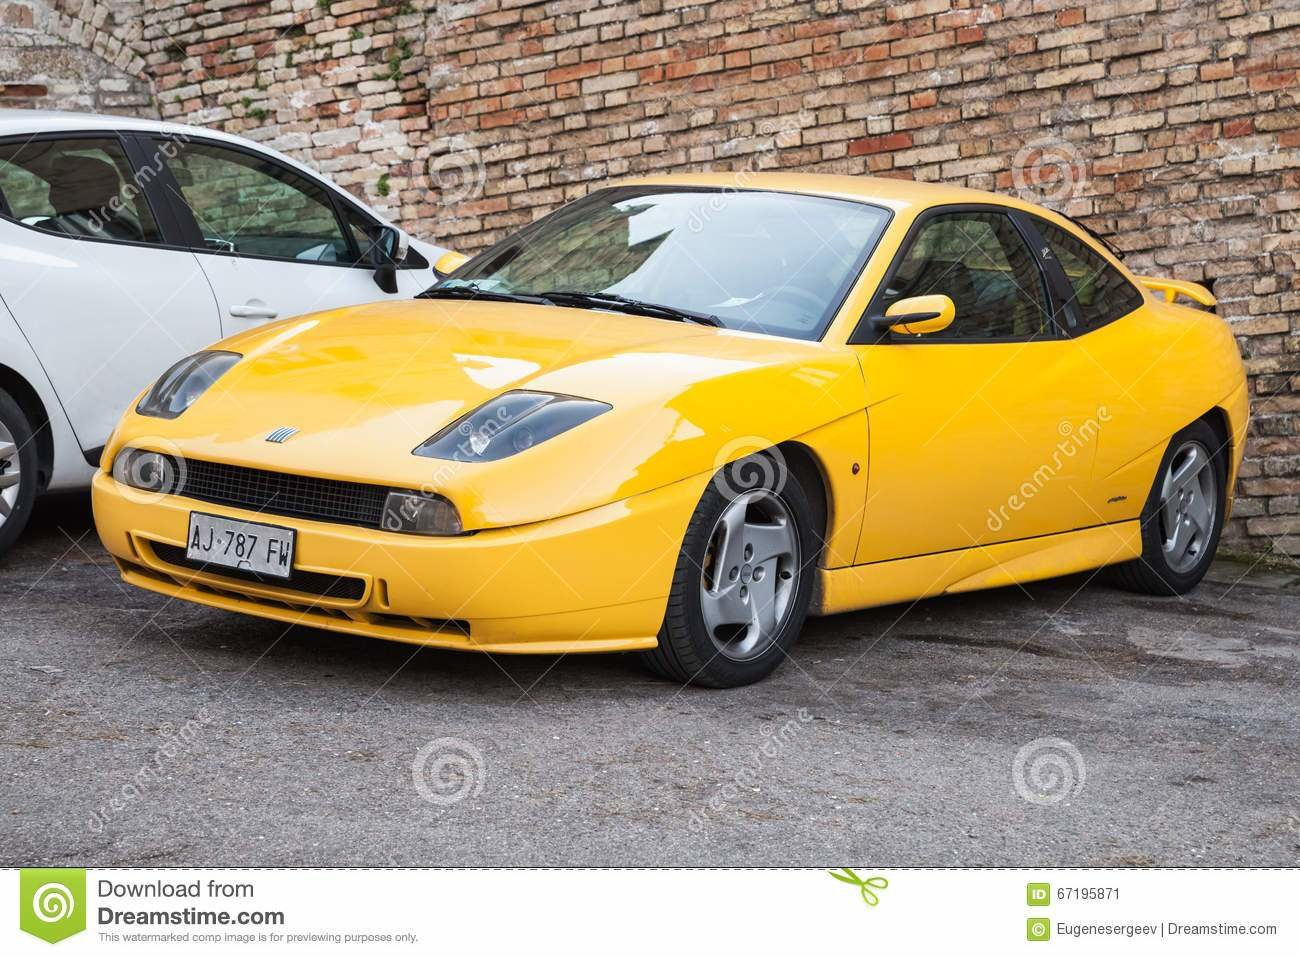 Latest Fiat Coupe Or Type 175 A Coupe Sports Car Editorial Photo Free Download